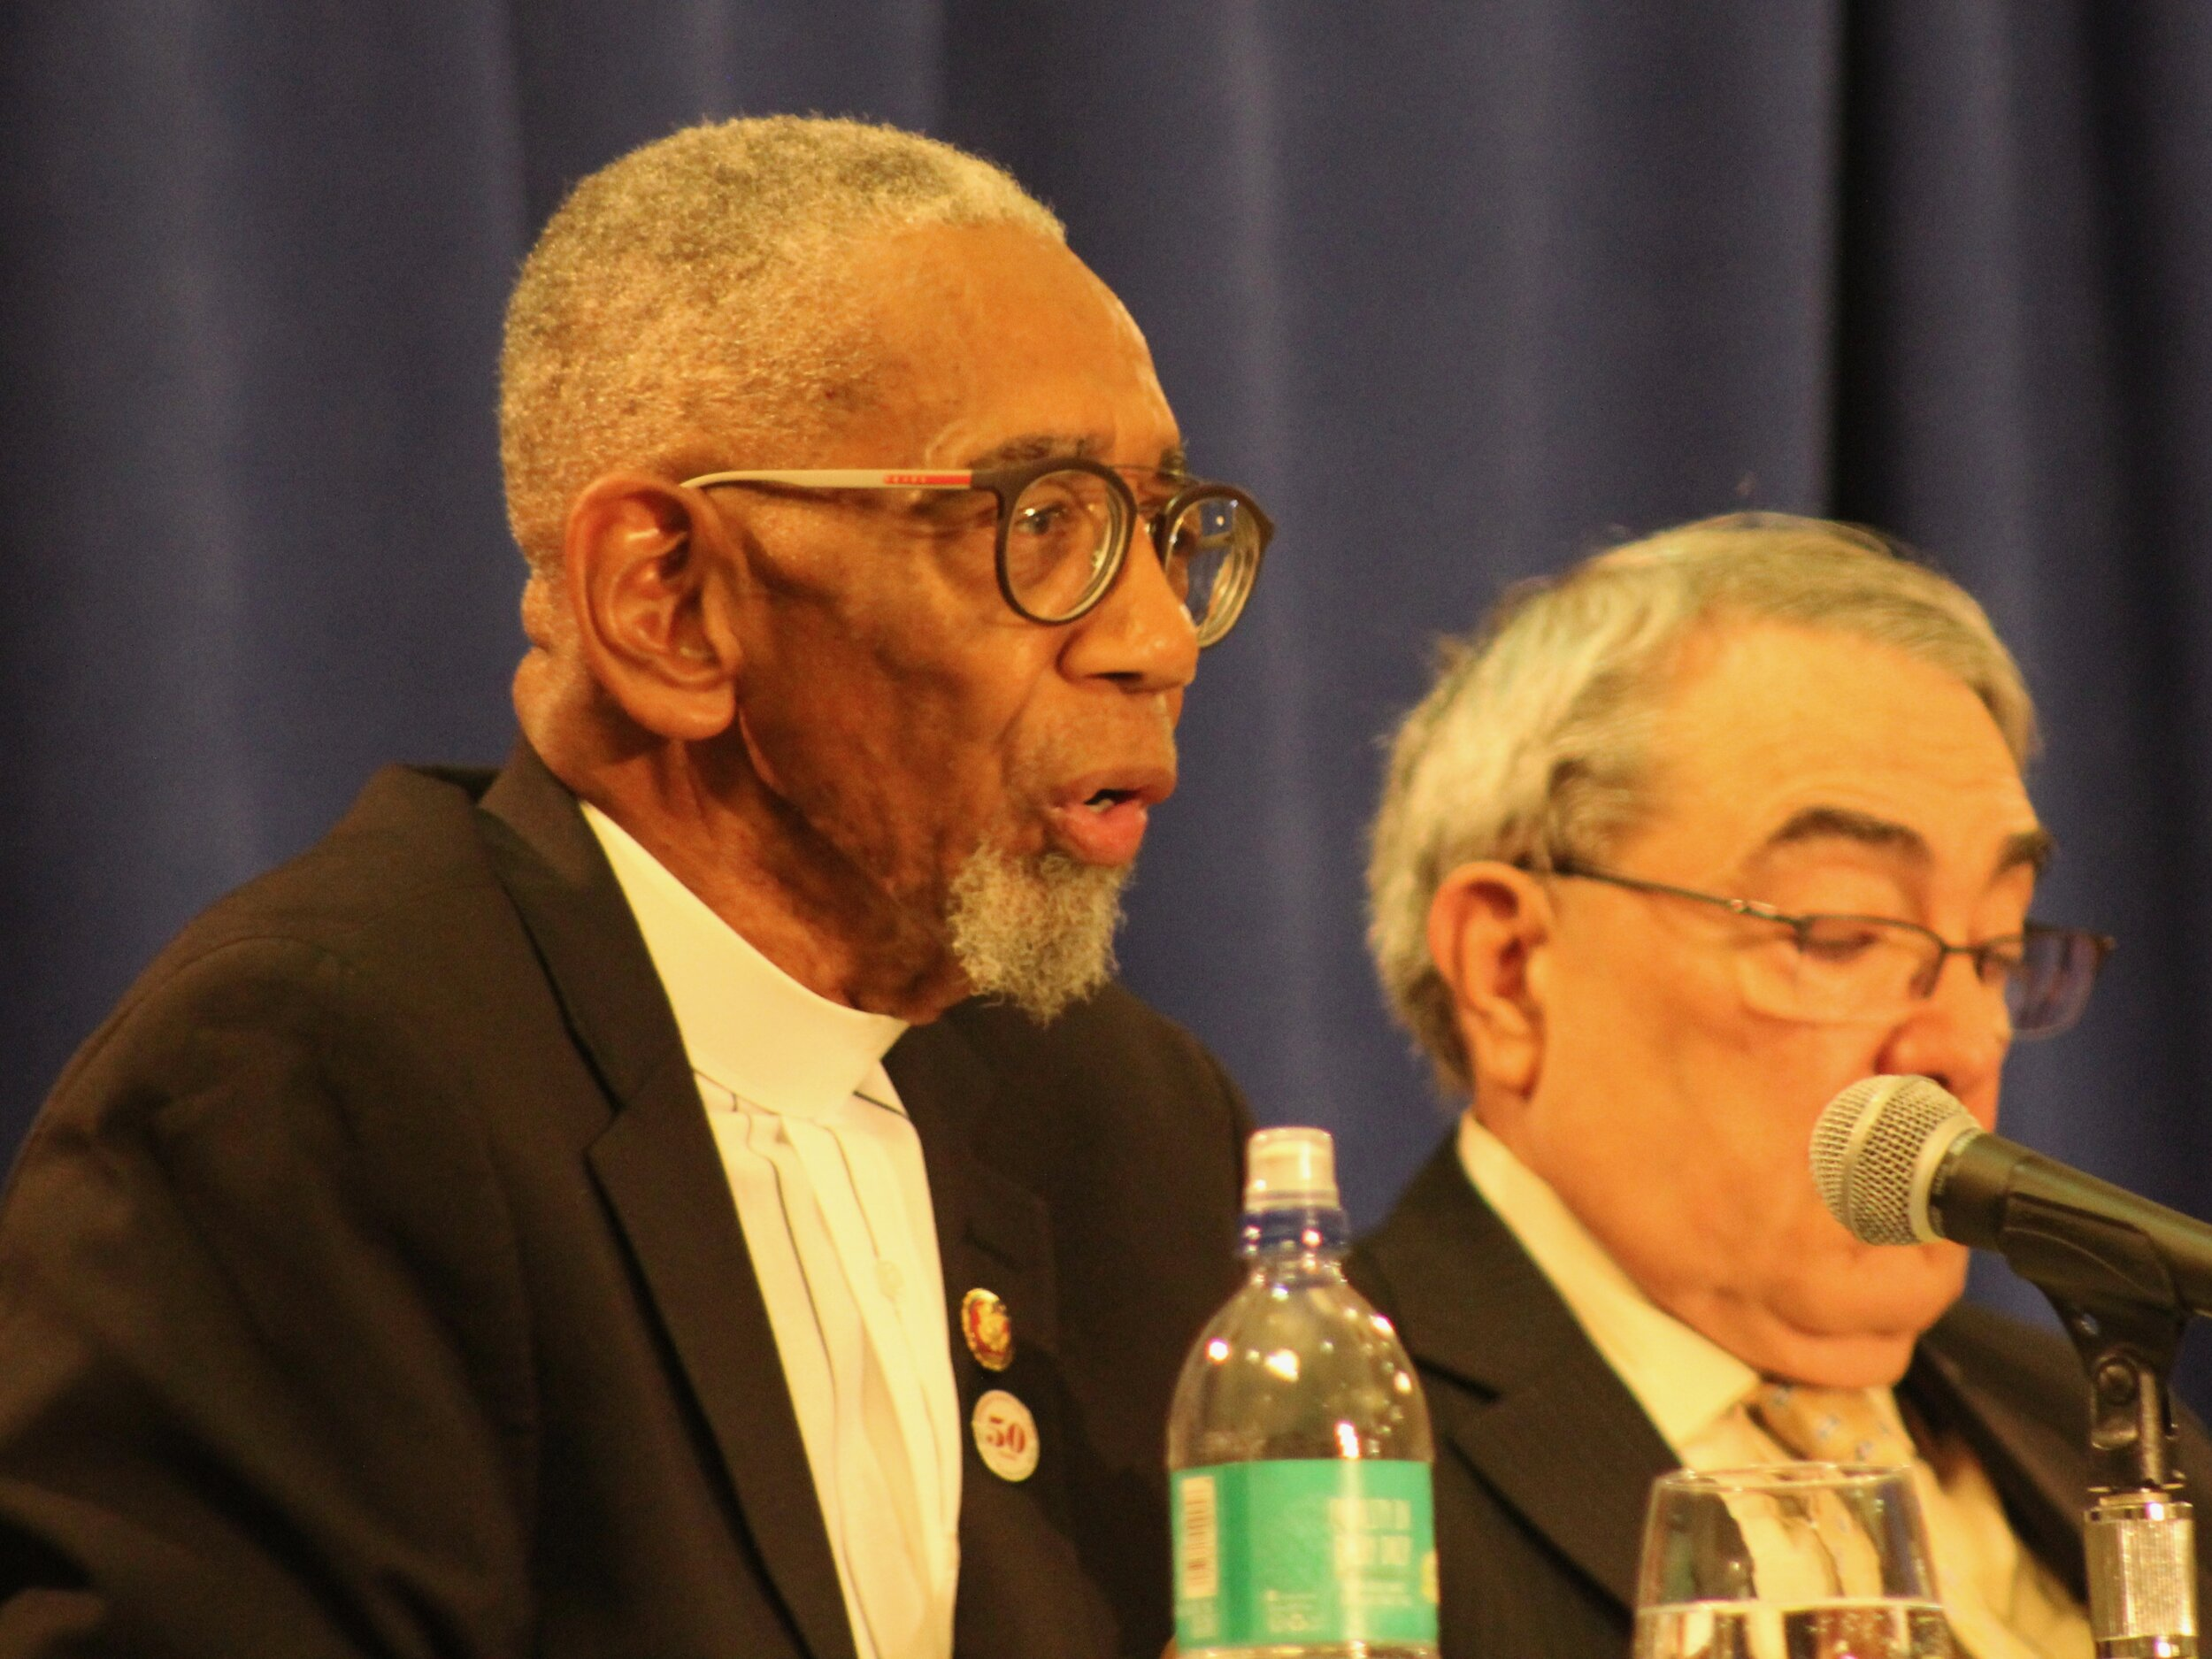 U.S. Rep. Bobby Rush, who lost a son to gun violence a decade ago, played host to Thursday's subcommittee meeting in his South Side congressional district in Chicago's Englewood neighborhood. (One Illinois/Ted Cox)